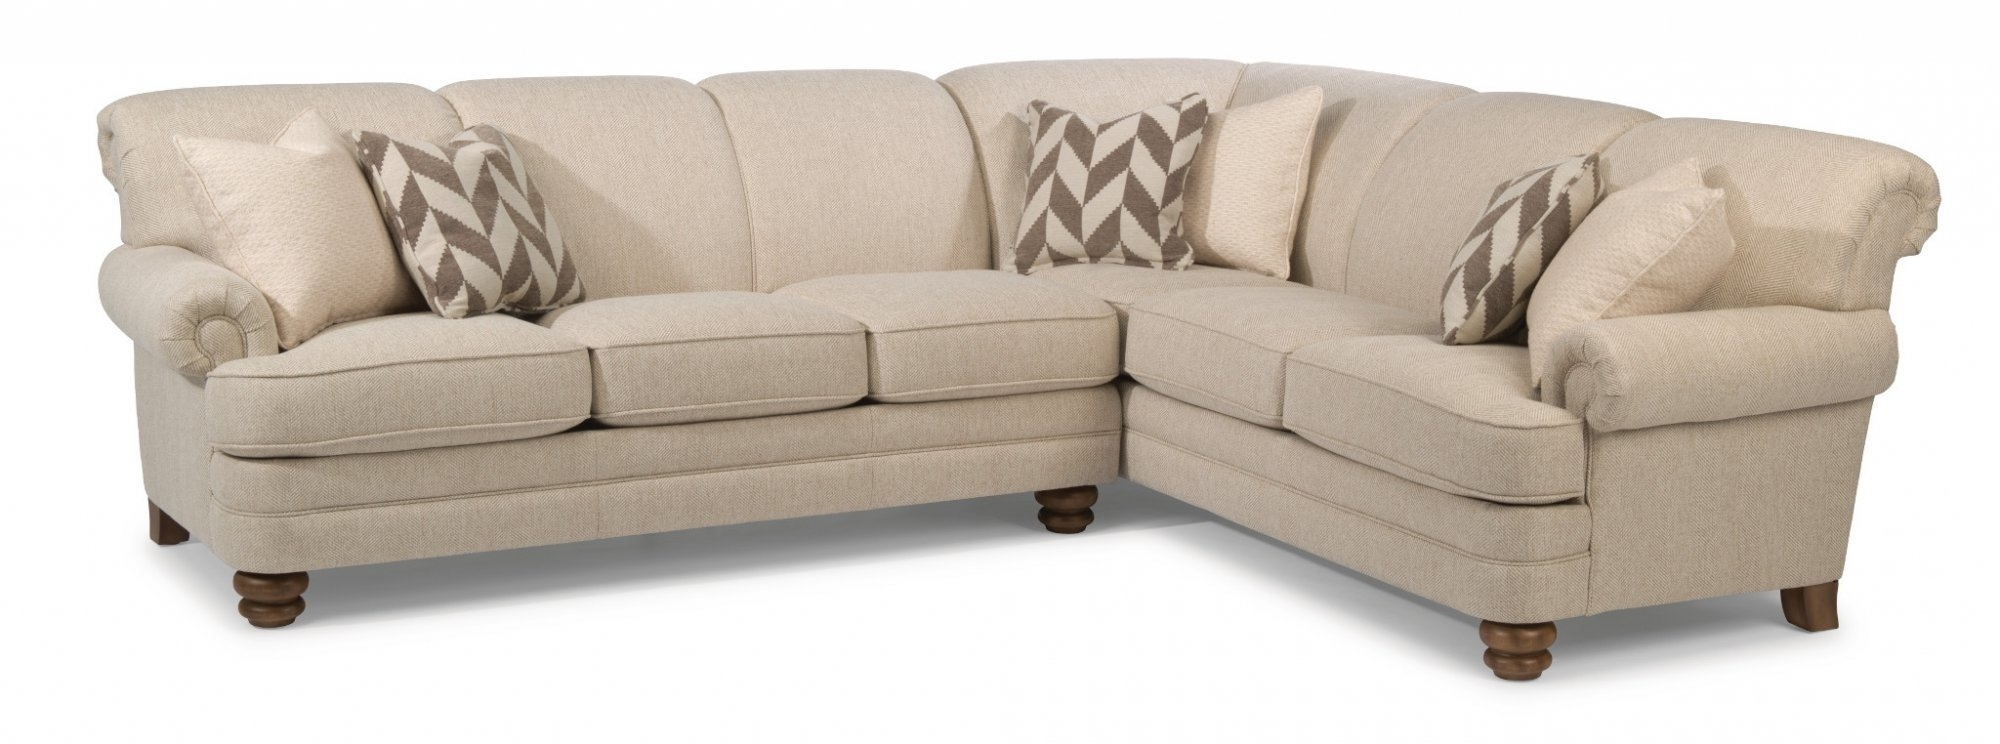 Well Liked Best Sectional Sofa With Nailhead Trim 89 For Your Best Sleeper Pertaining To Sectional Sofas With Nailheads (View 18 of 20)